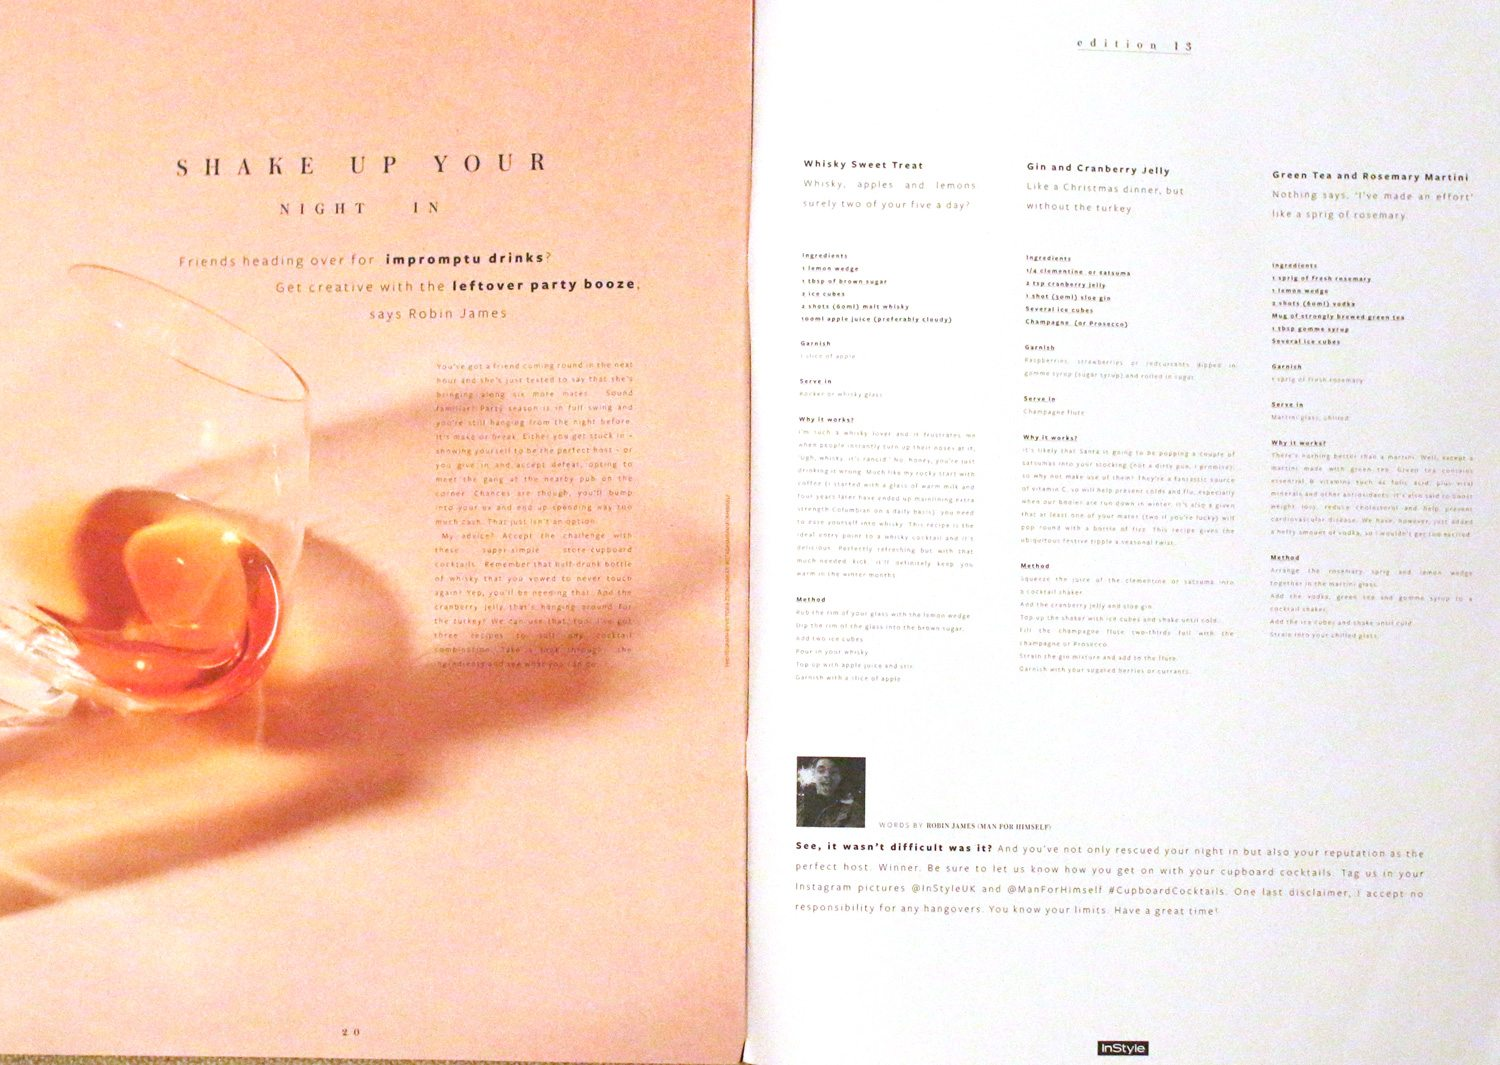 Robin-James-Cocktail-Recipe-InStyle-Magazine